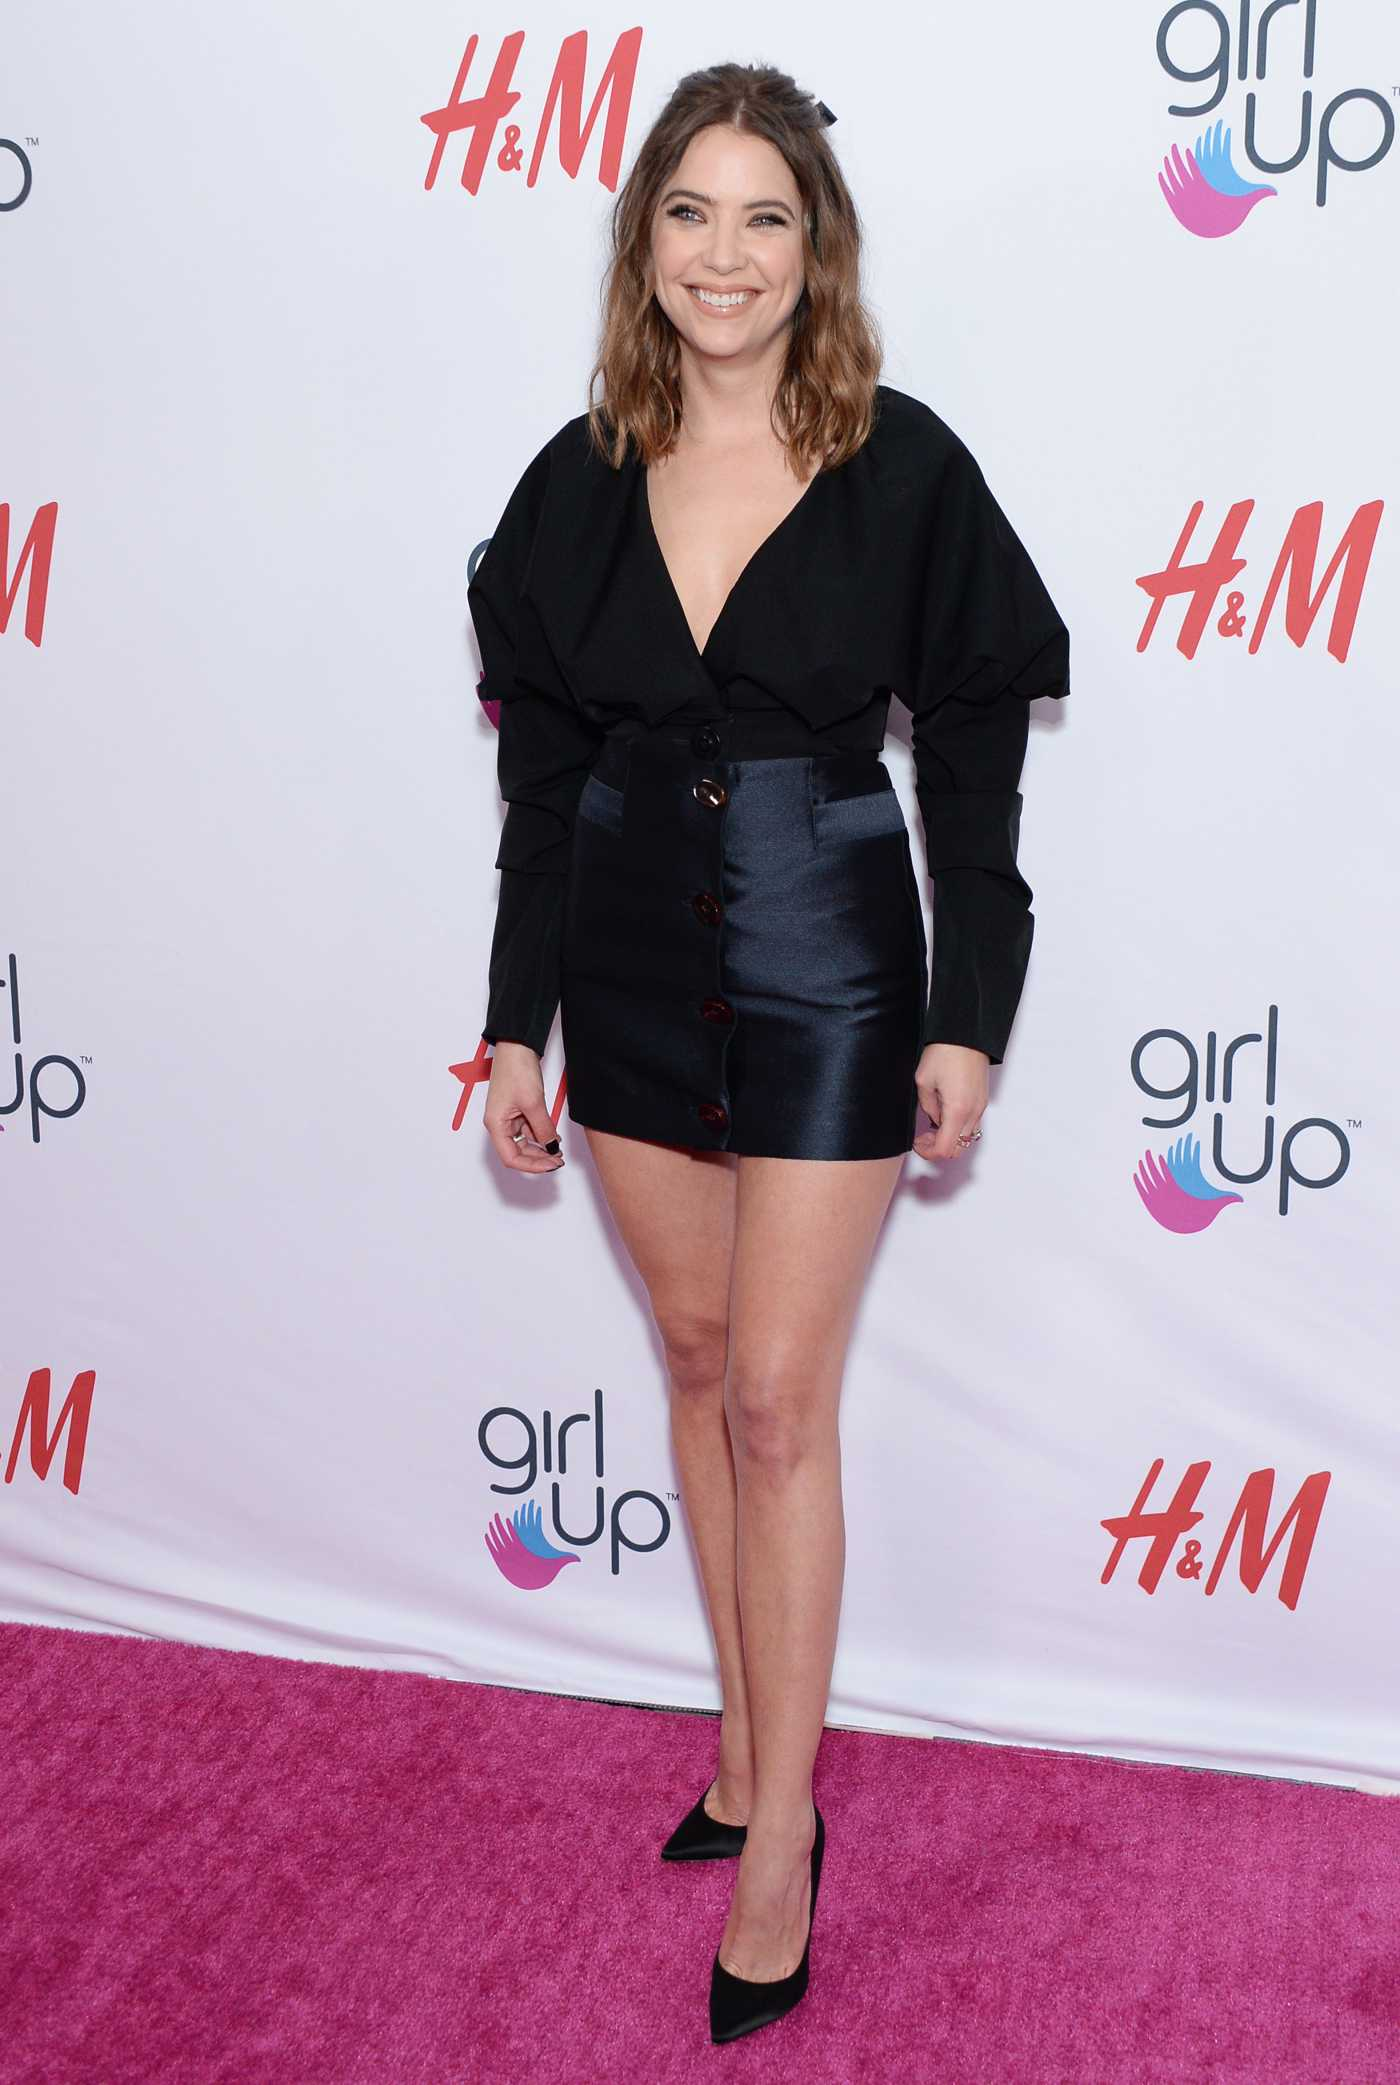 Ashley Benson Attends the 2nd Annual Girl Up #GirlHero Awards at the Beverly Wilshire Four Seasons Hotel in Beverly Hills 10/13/2019